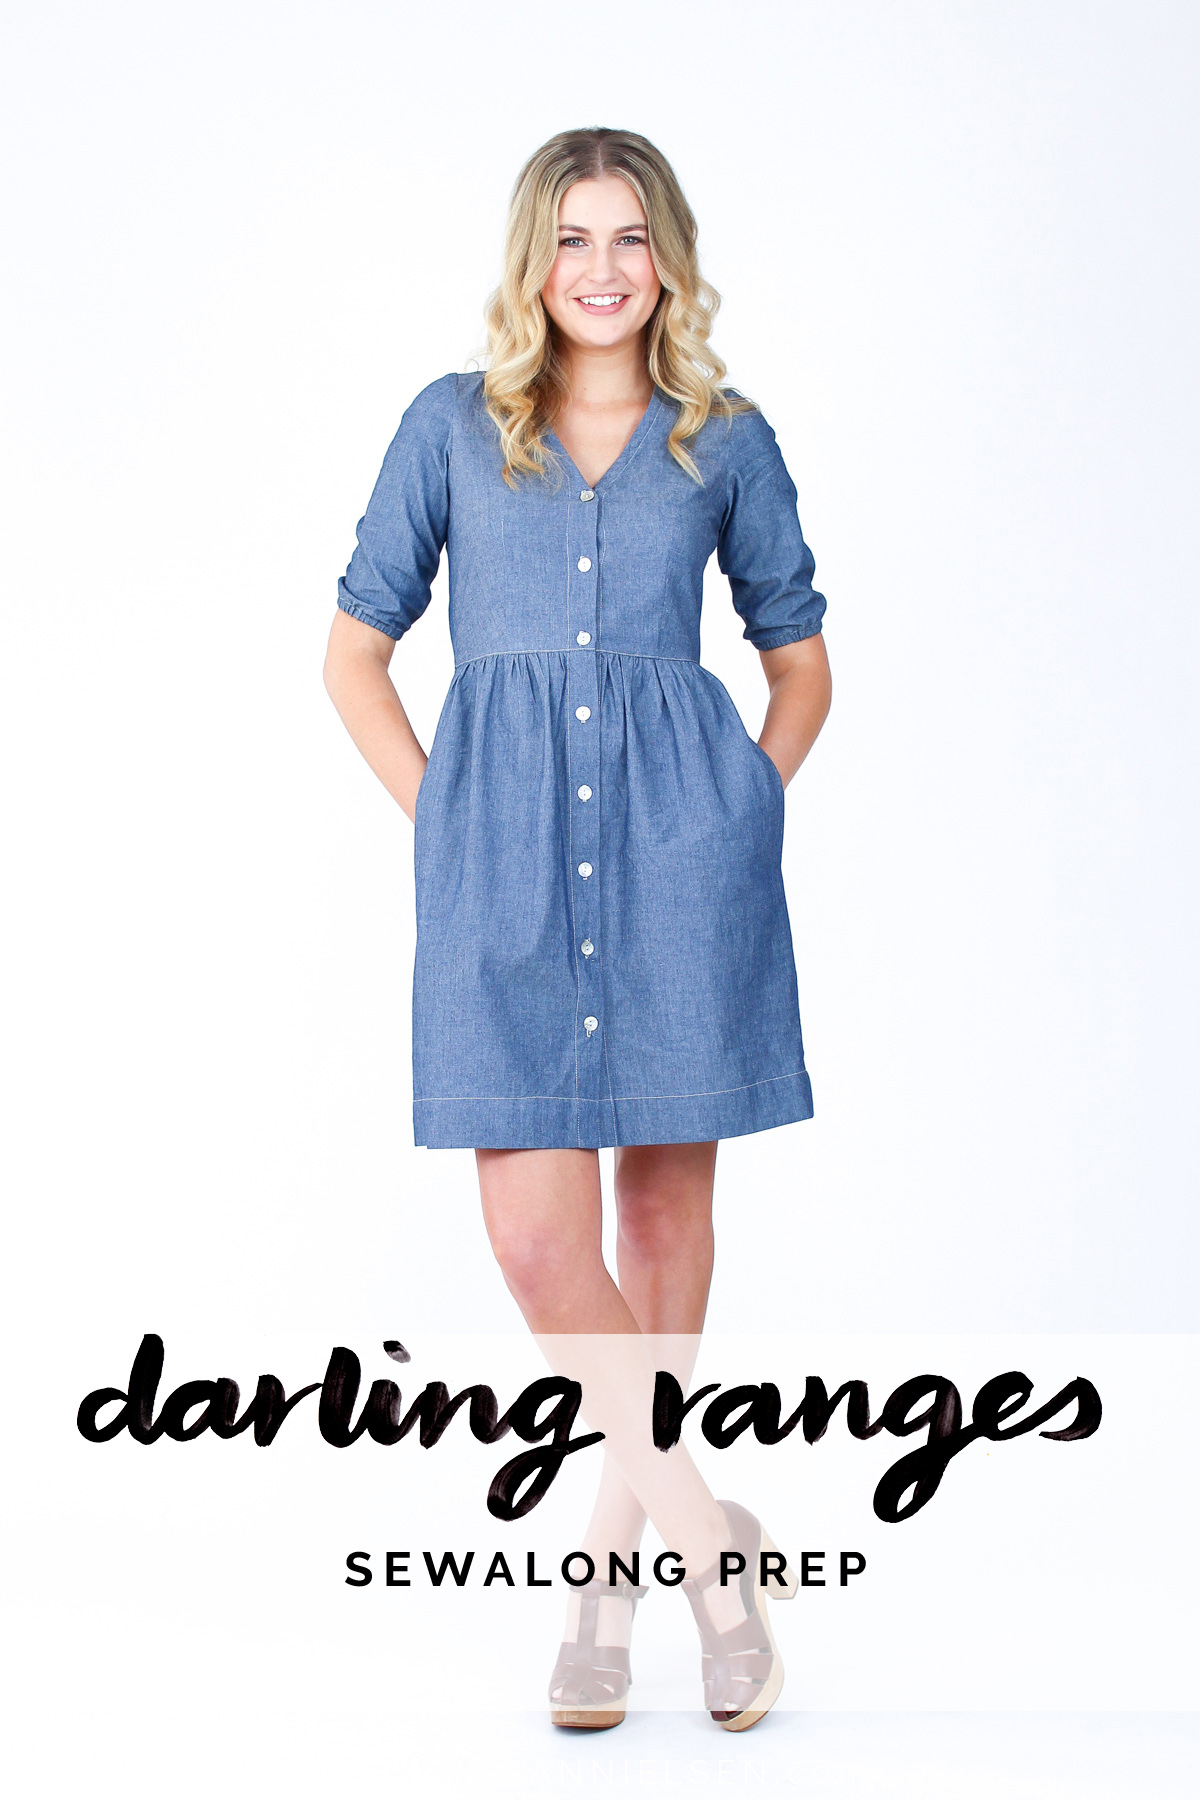 preparation for sewing the Darling Ranges dress and blouse // Megan Nielsen Design Diary